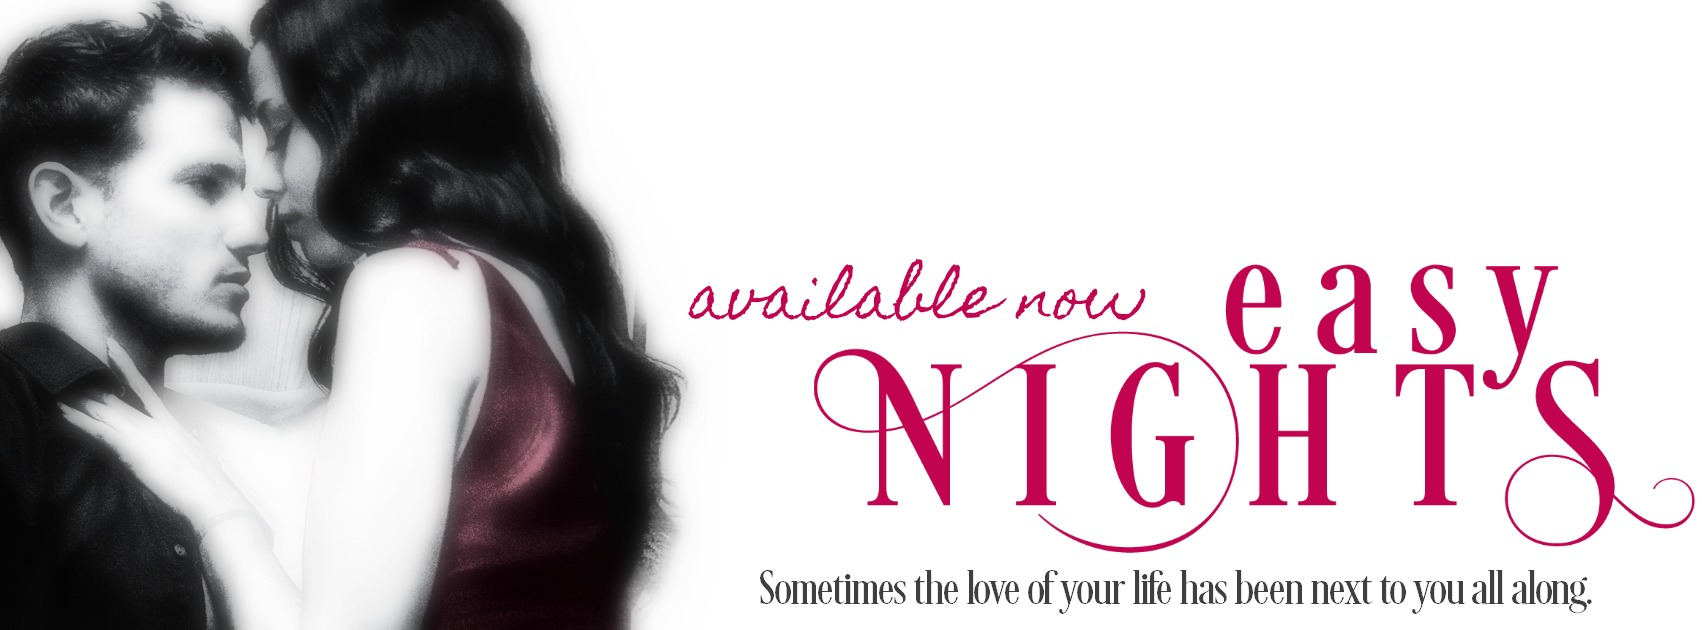 Release Day Blitz & Review: Easy Nights by Kristen Proby @Handbagjunkie @InkSlingerPR